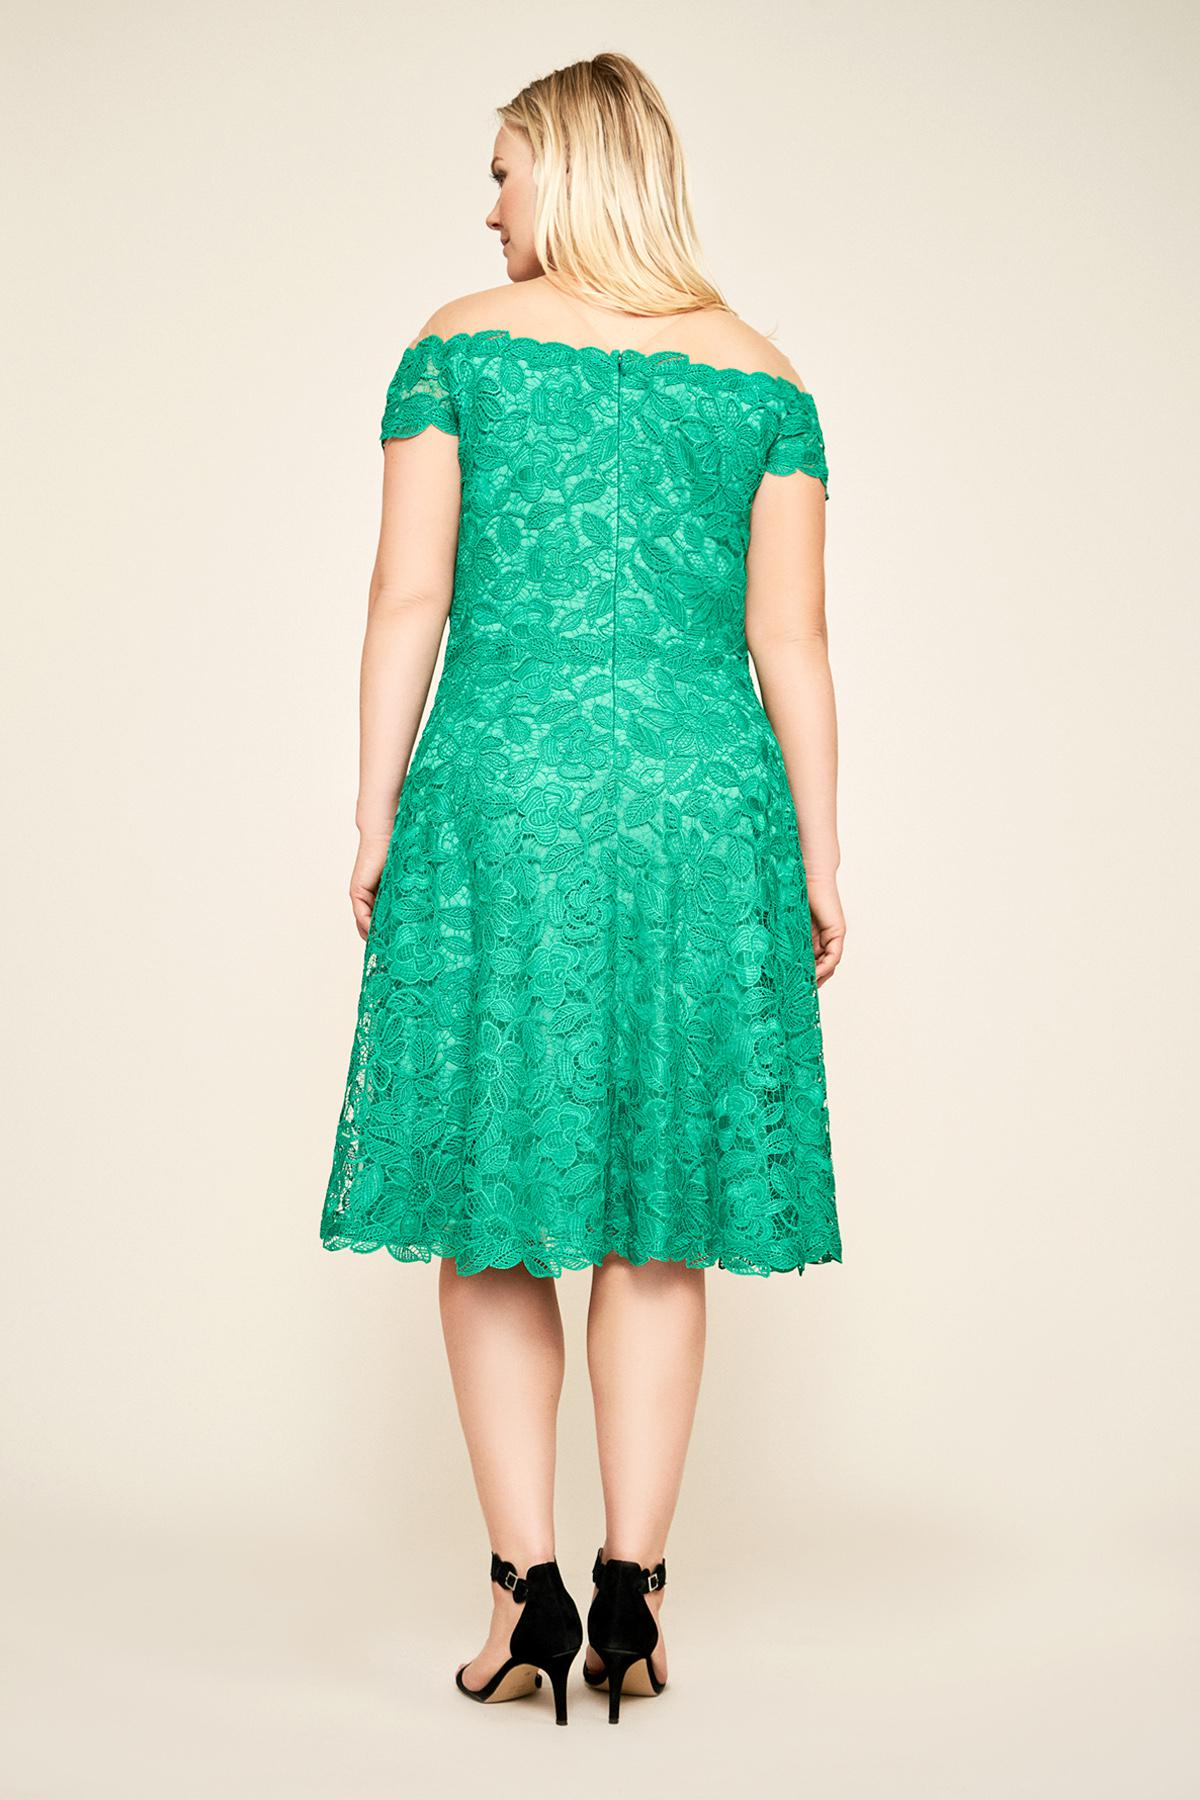 9f9880d557a56 Tadashi Shoji - Green Elidi Off-the-shoulder Lace Dress - Plus Size -. View  fullscreen